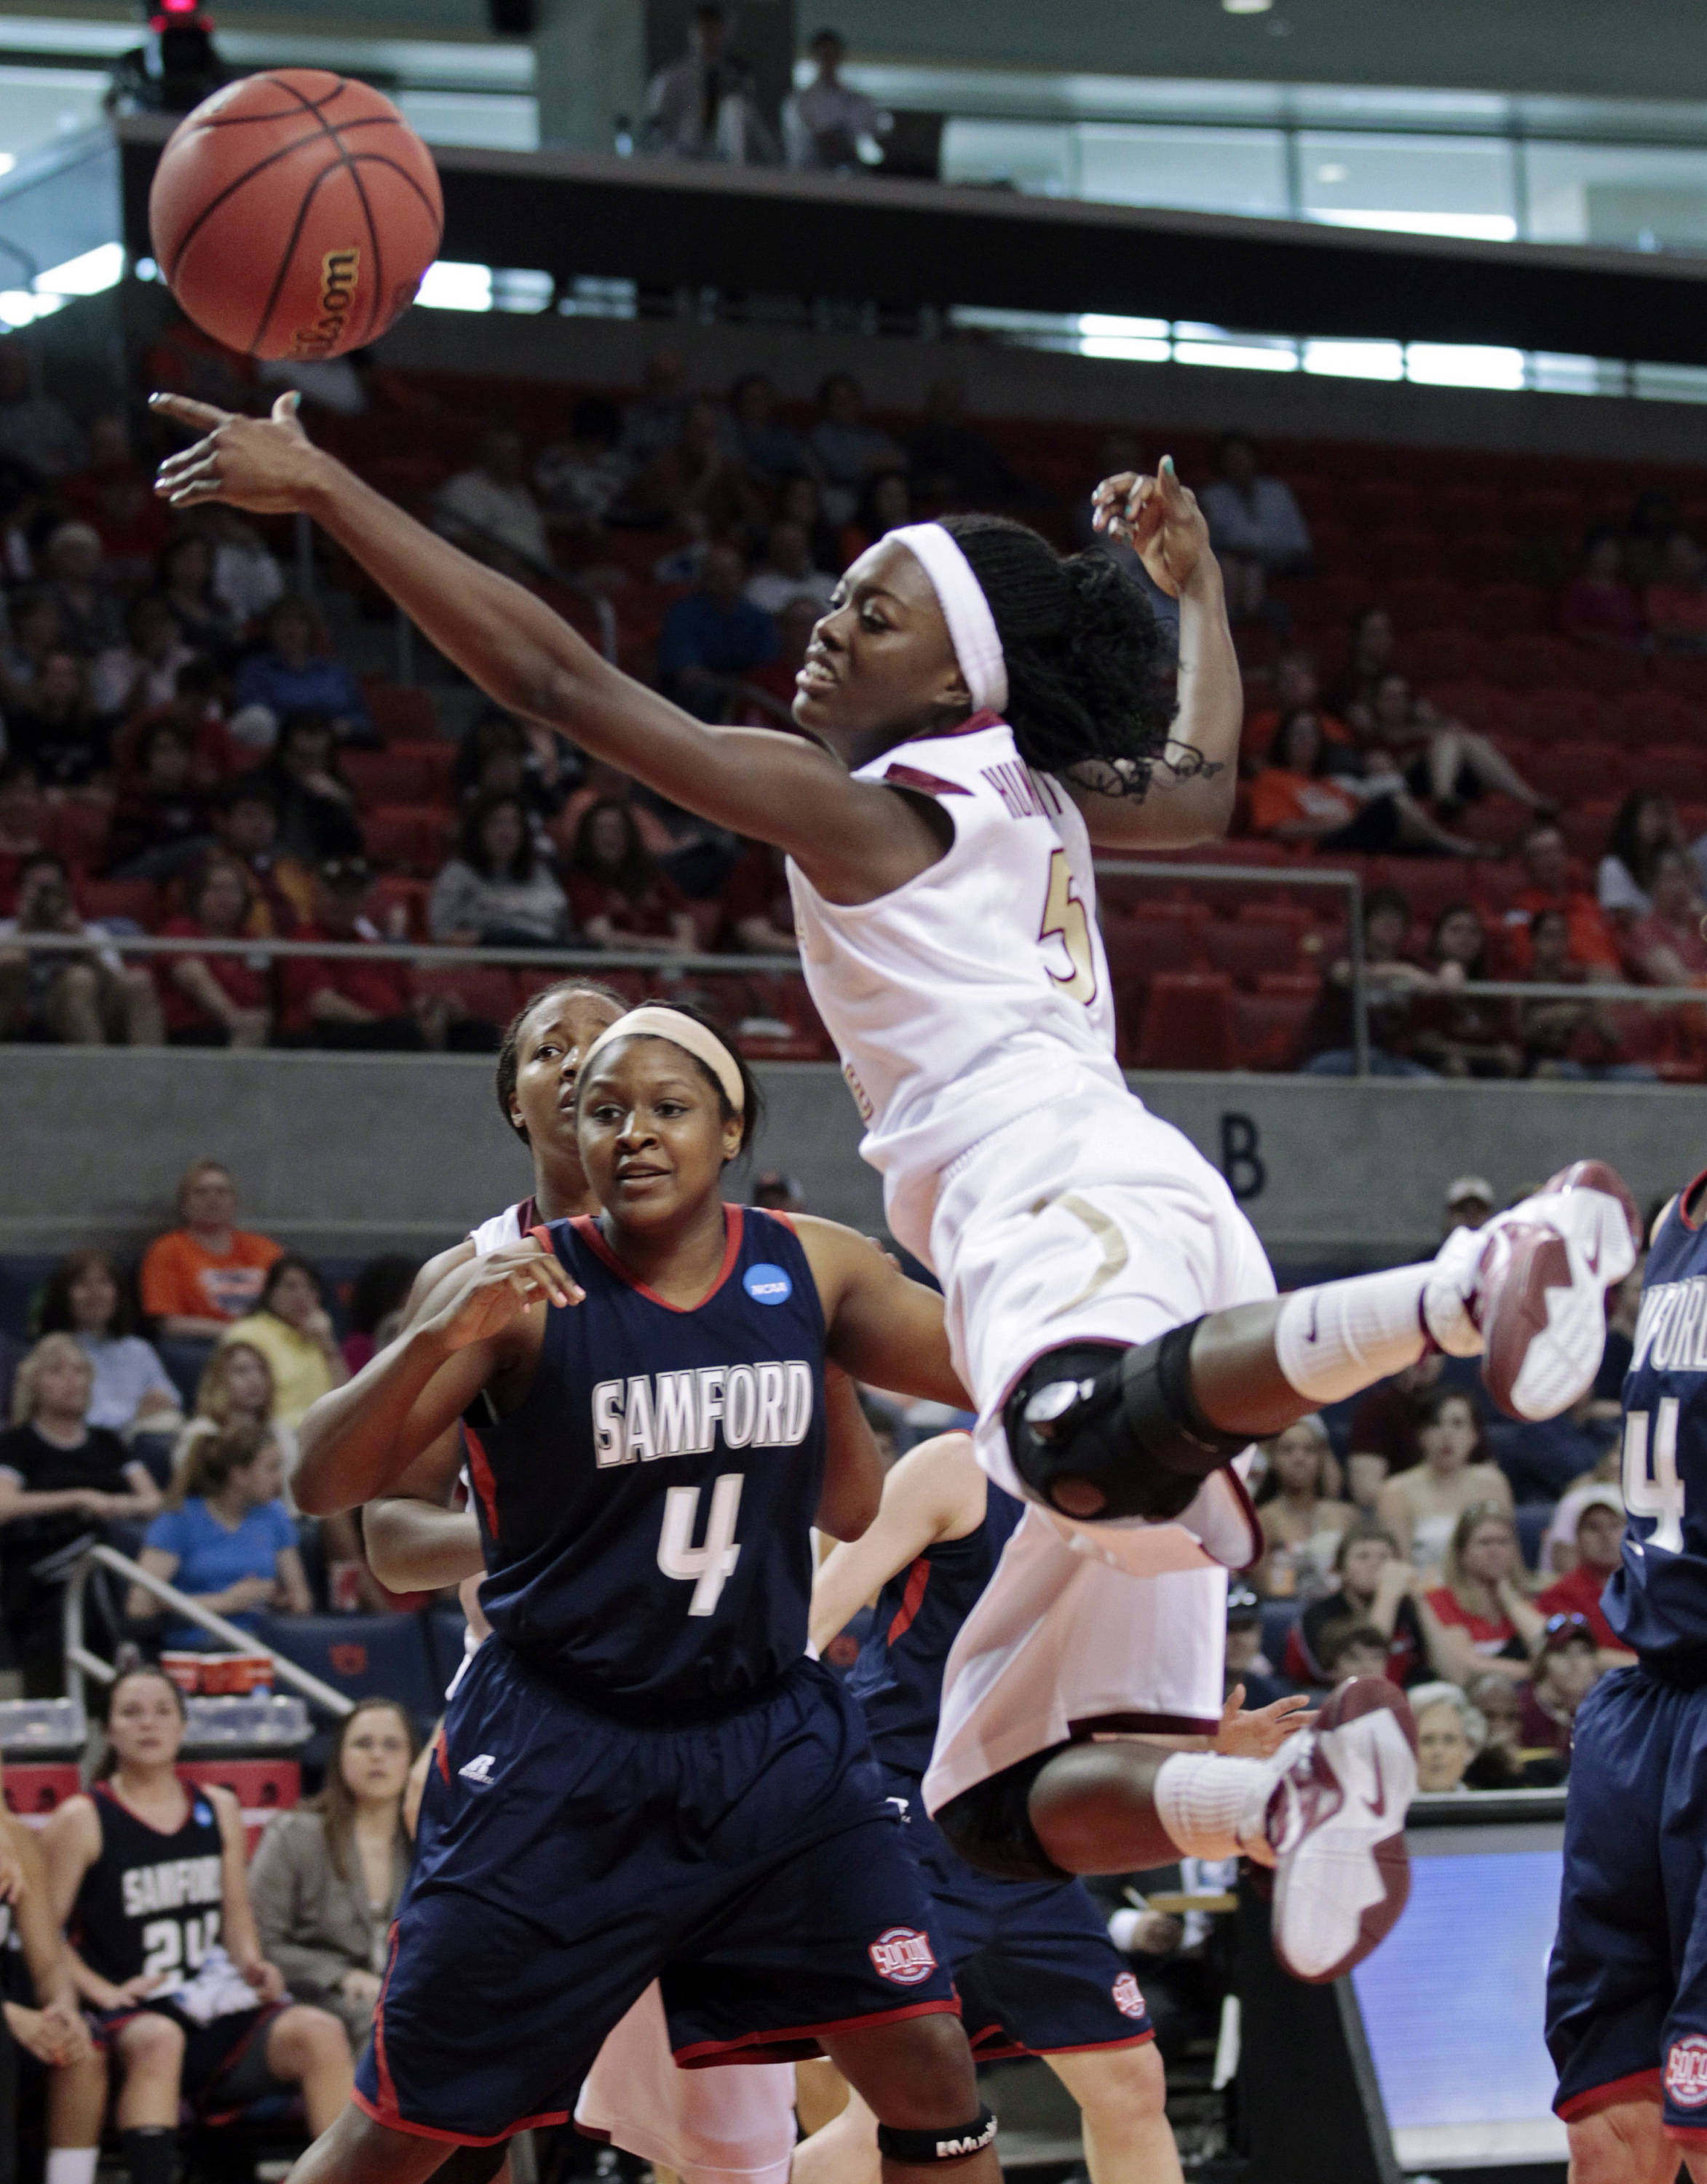 Florida State guard Christian Hunnicutt goes to the basket as Samford's J'Quita Babineaux defends in the first half. (AP Photo/Dave Martin)